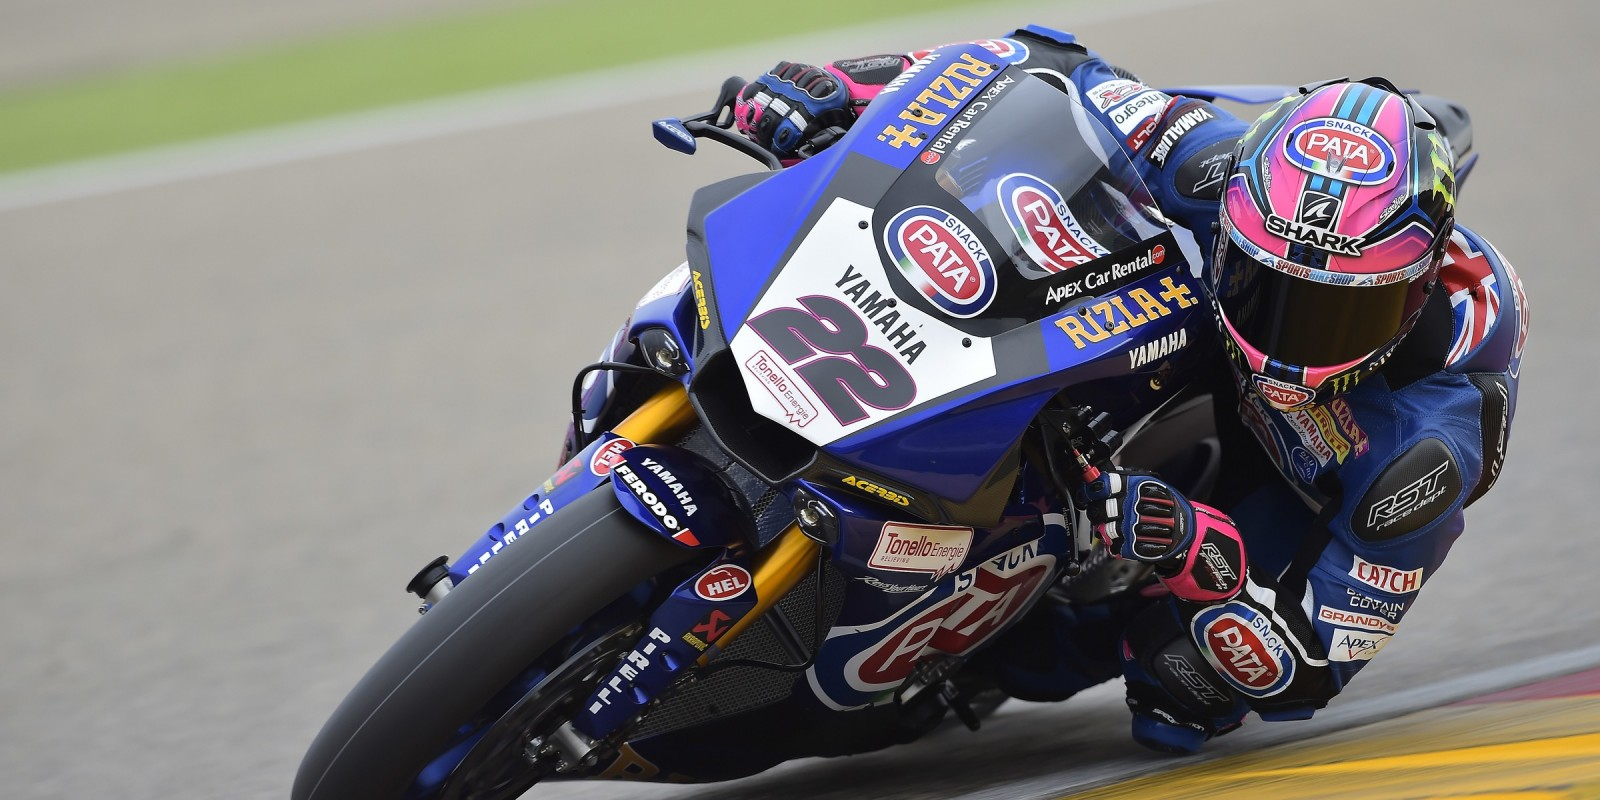 Alex Lowes at the 2017 World Superbike Pirelli Aragon Round